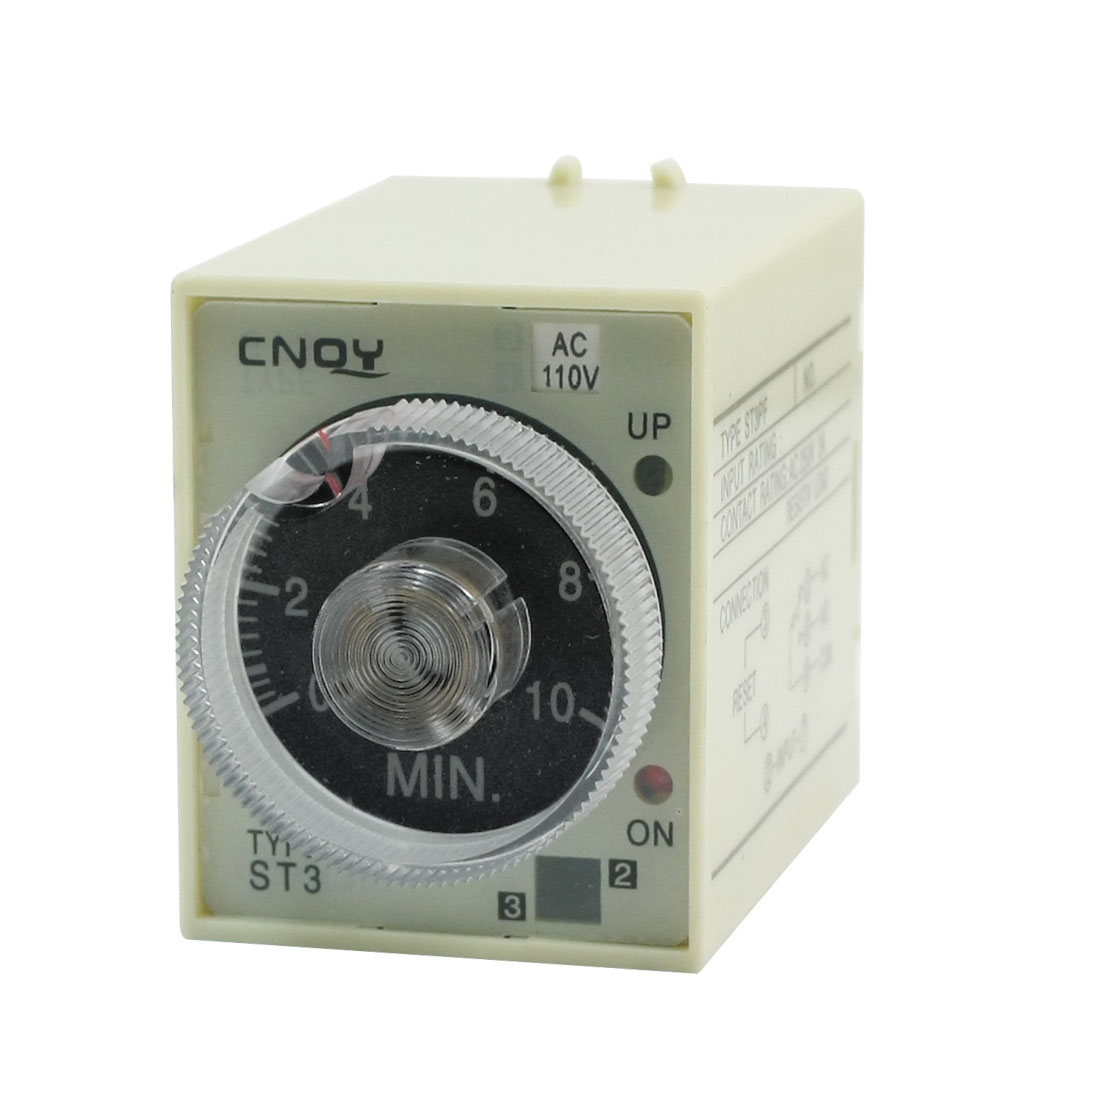 ST3 Model AC 110V 1NO 1NC 0-10Min 10Minute Delay Power on Timer Time Relay